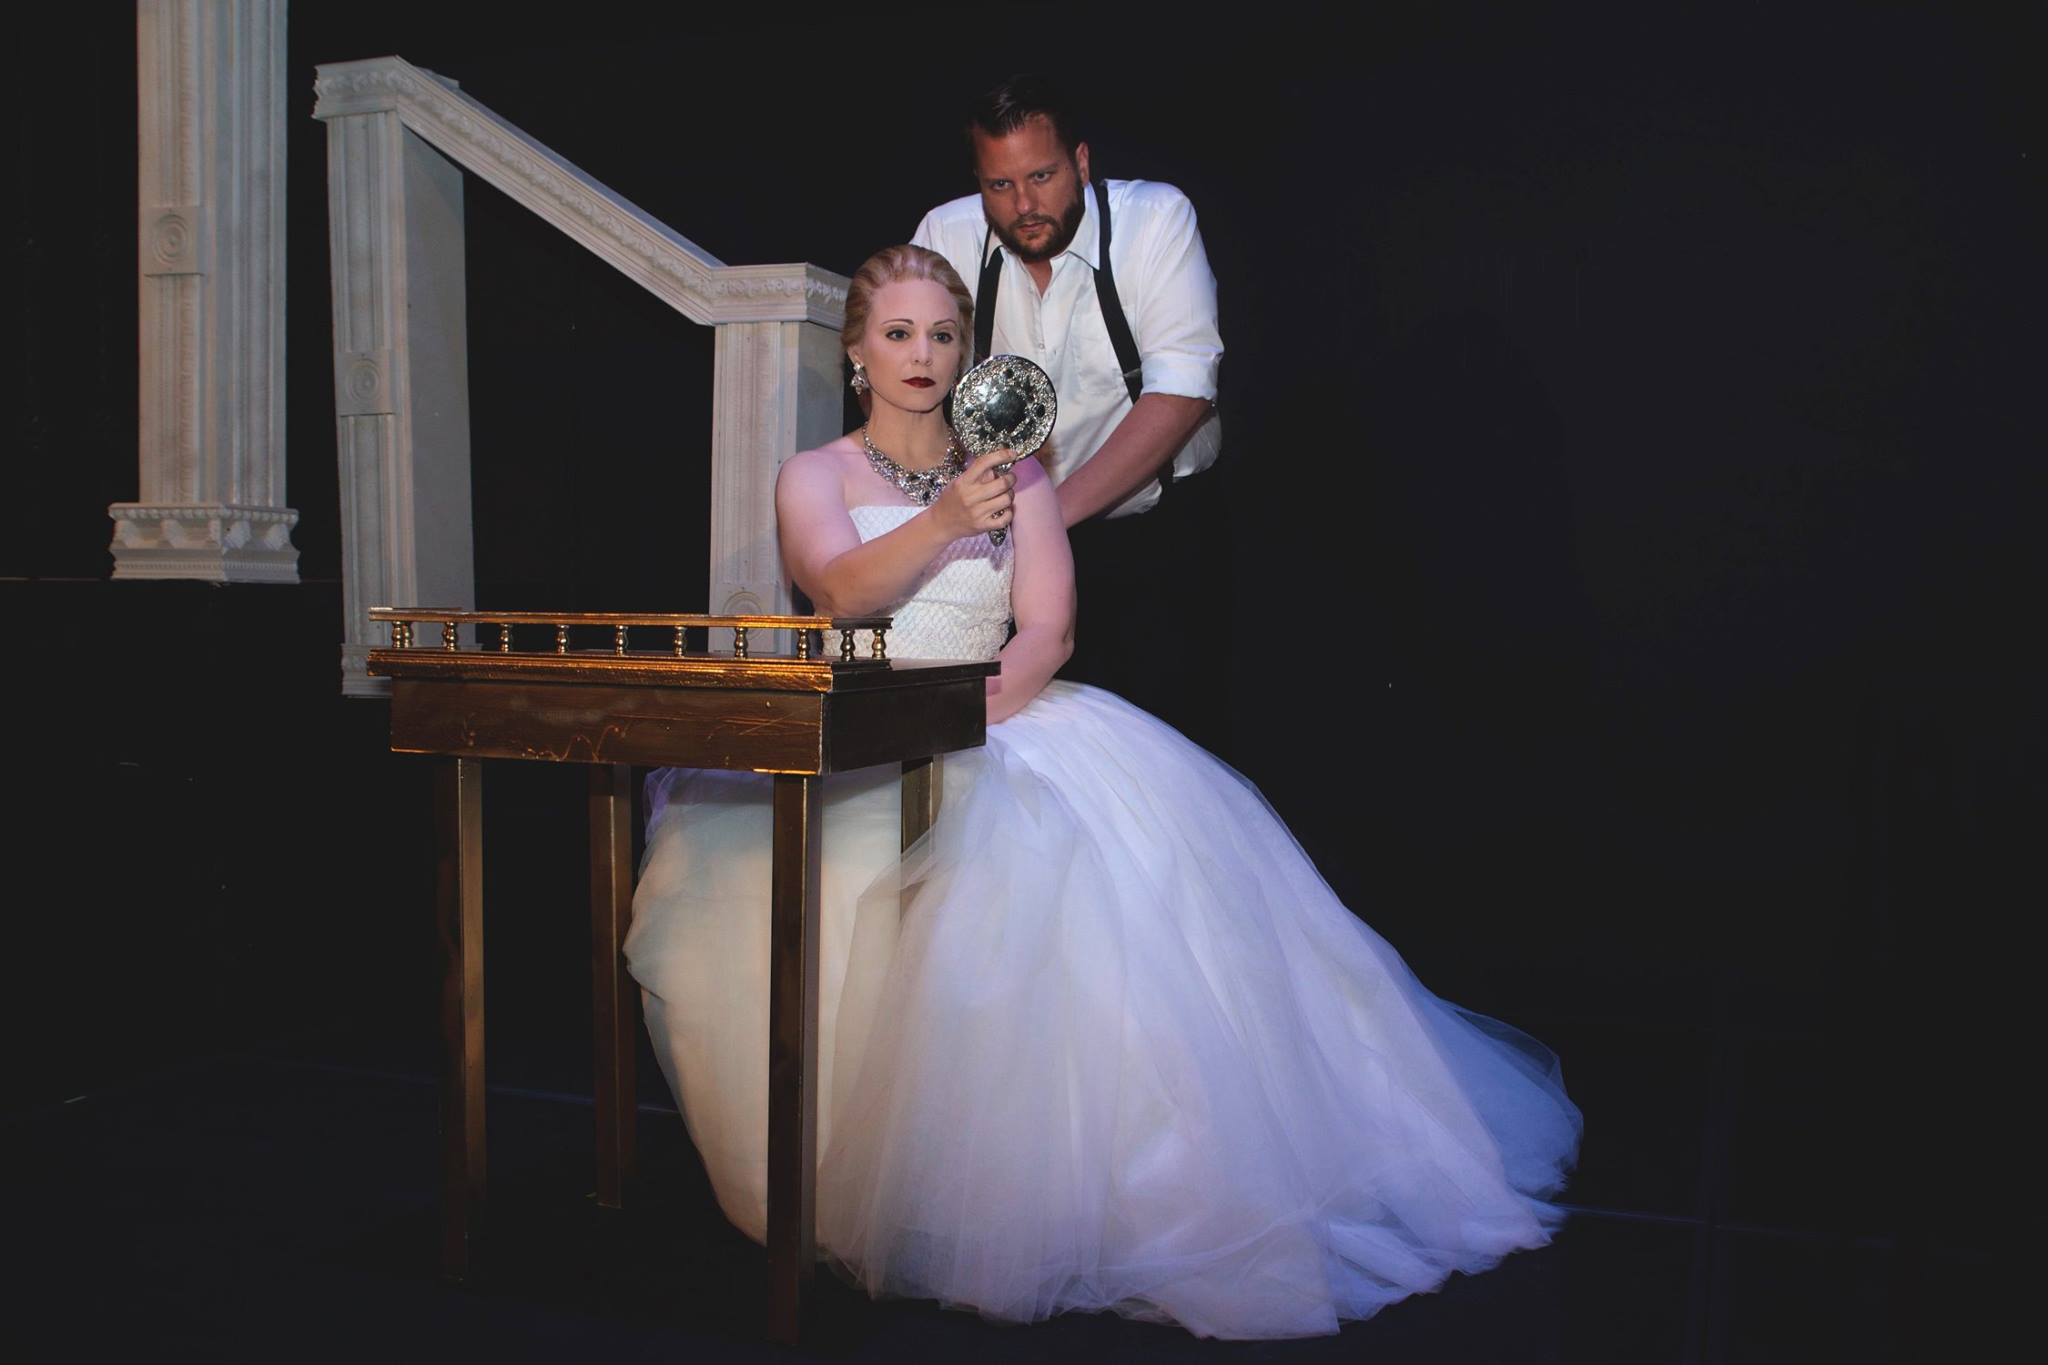 BWW Review: EVITA at Theatre Frisco